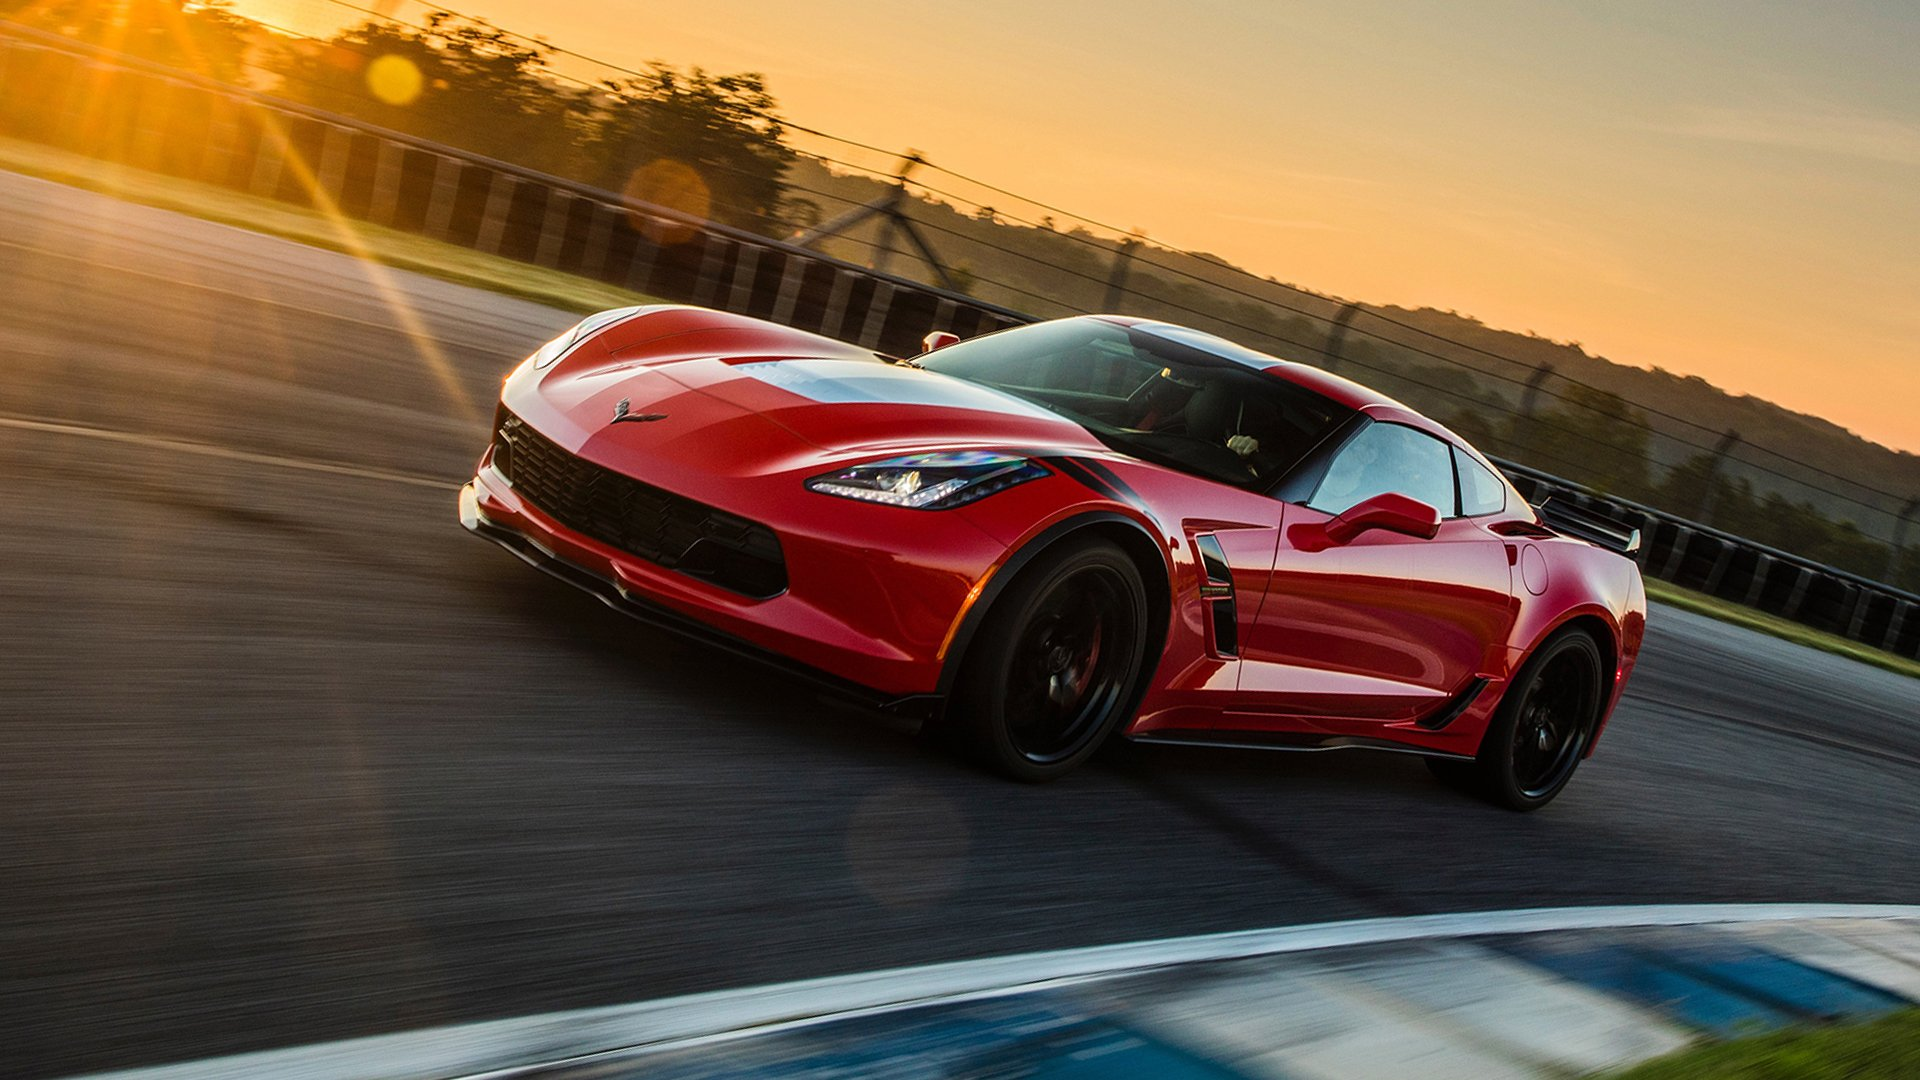 New 2019 Chevrolet Corvette Price